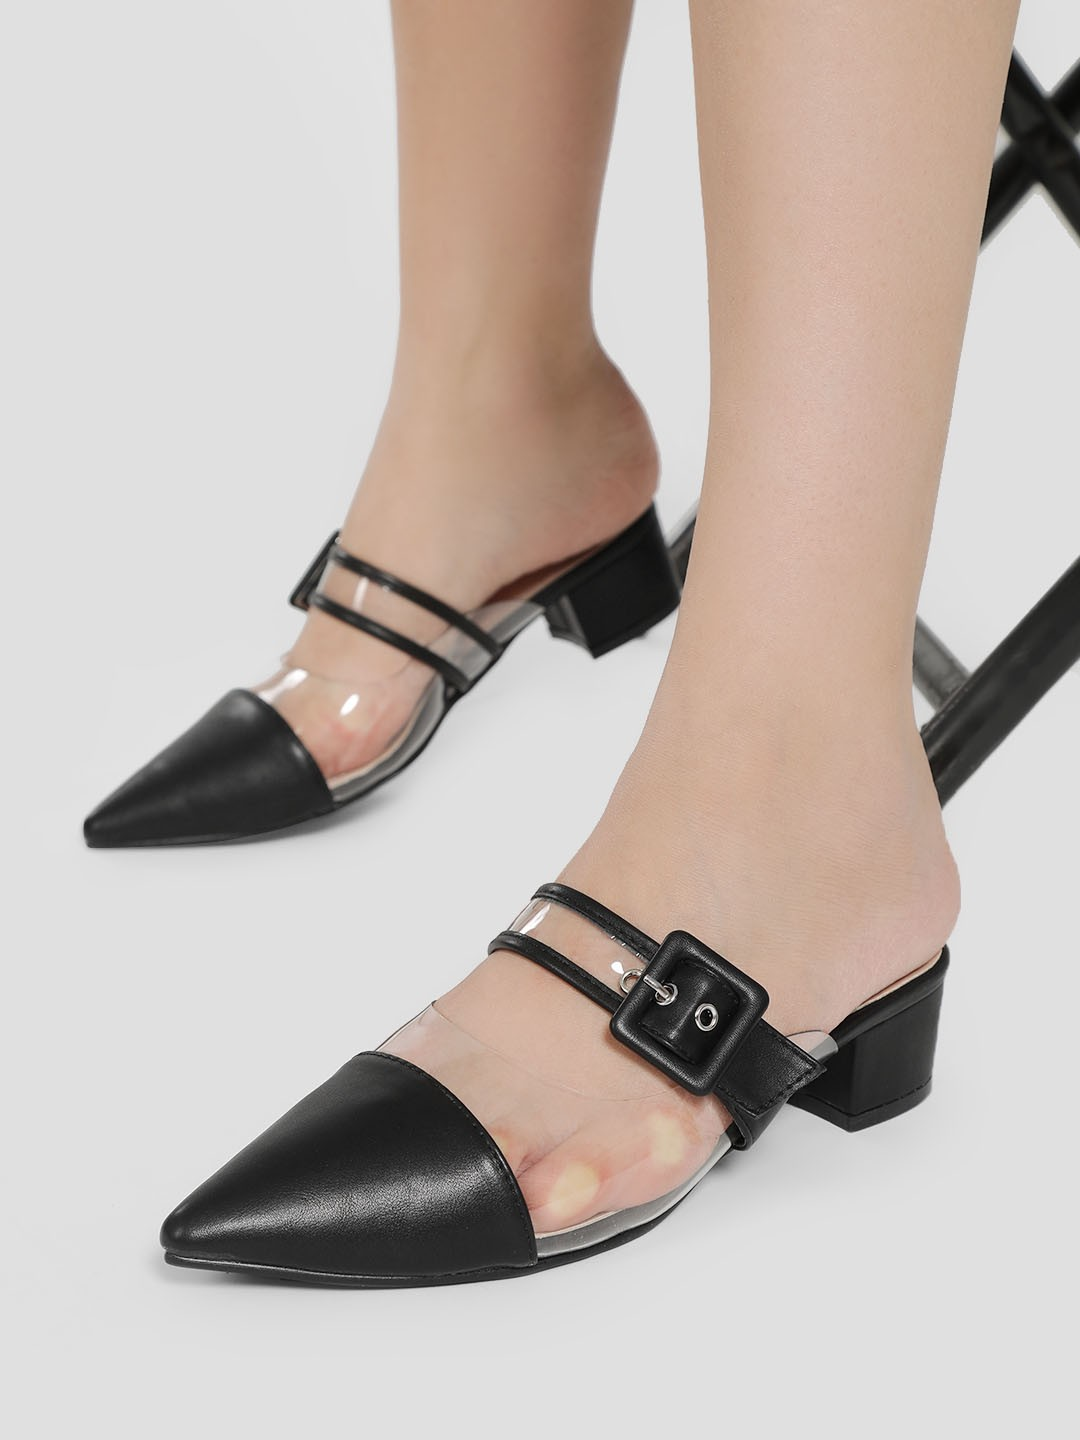 My Foot Couture Black Clear Buckle Strap Heeled Shoes 1